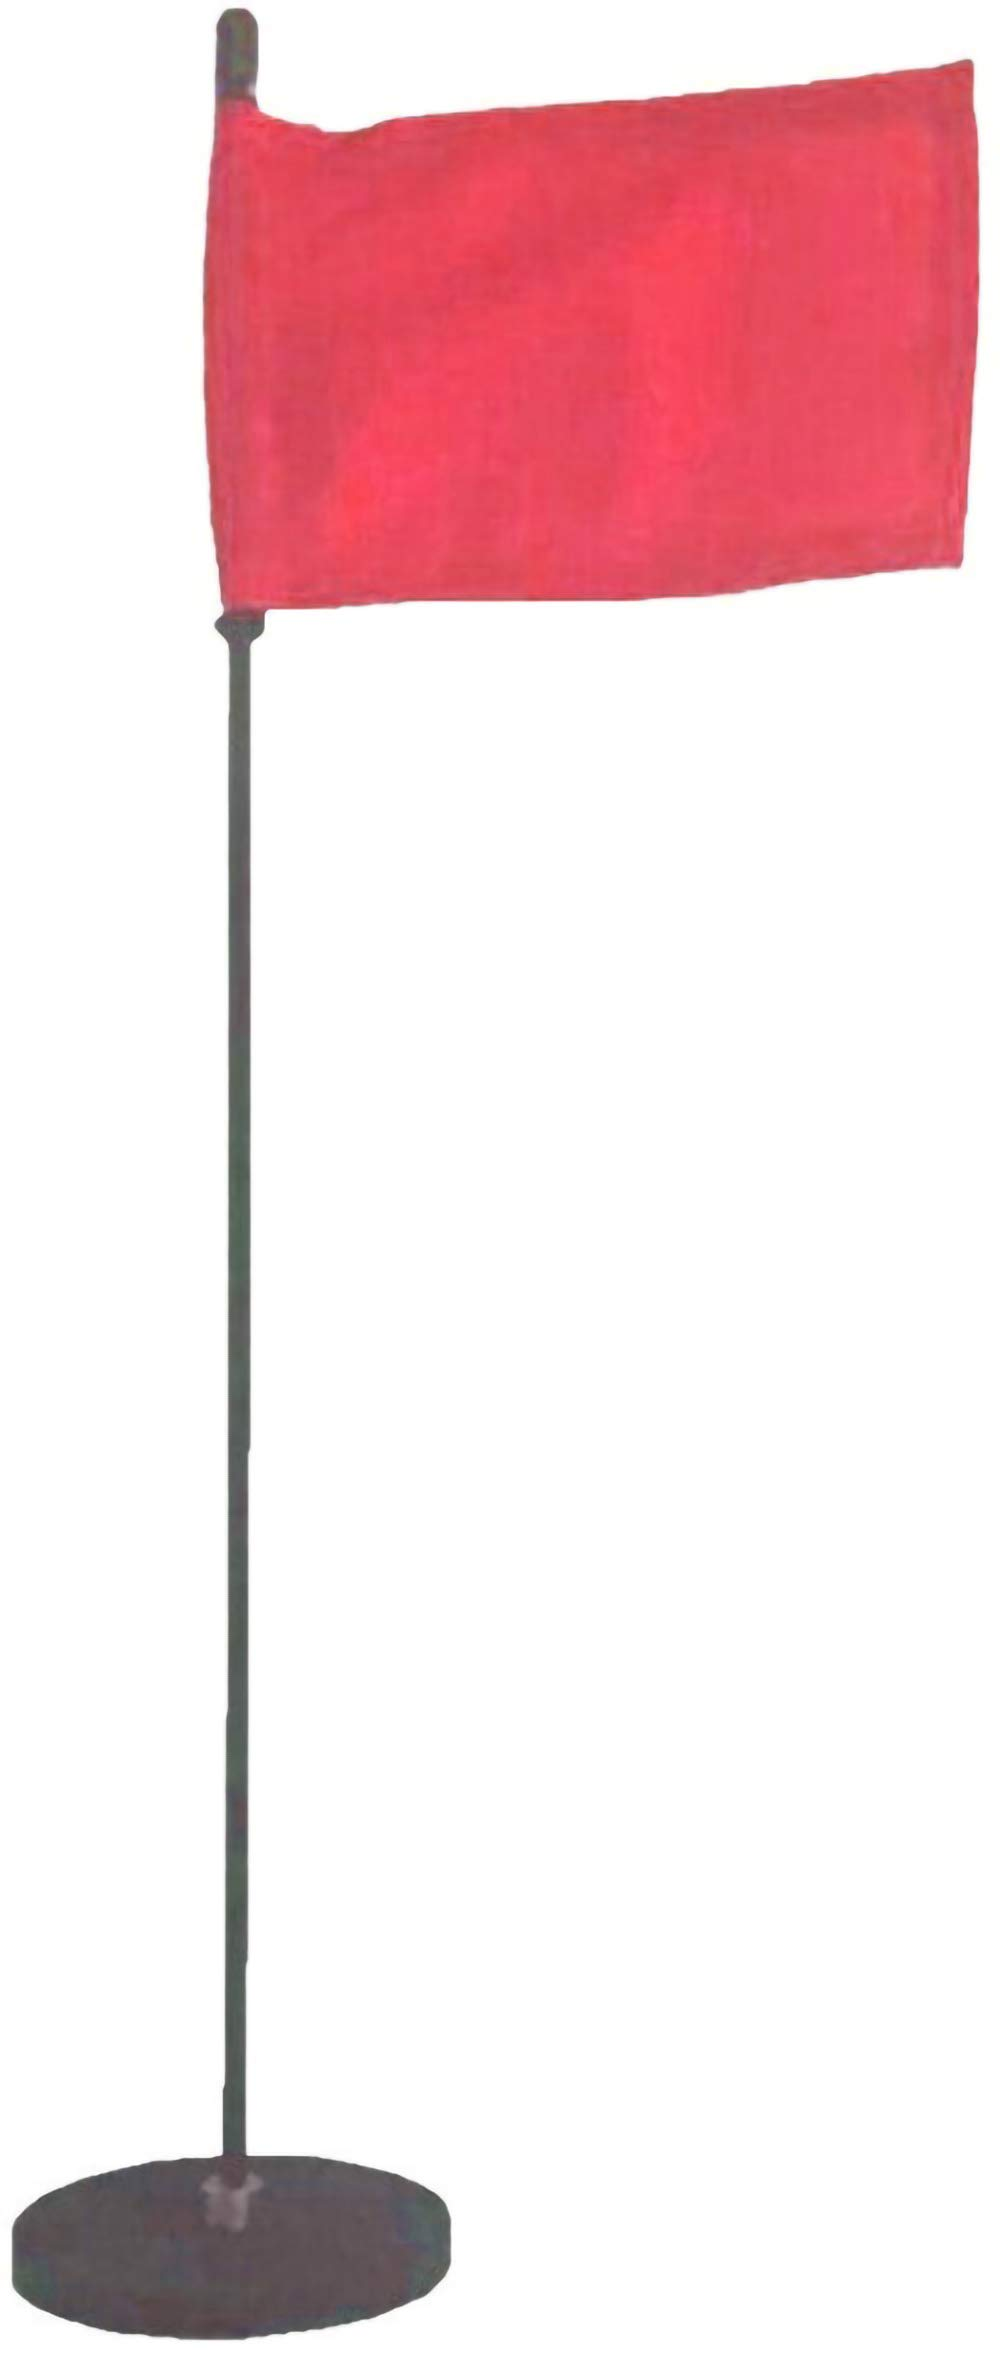 Magnetic Base Flag Holder 1 FT. Steel Pole - Hold Force 212 lbs. - 4 x 6 Red Flag